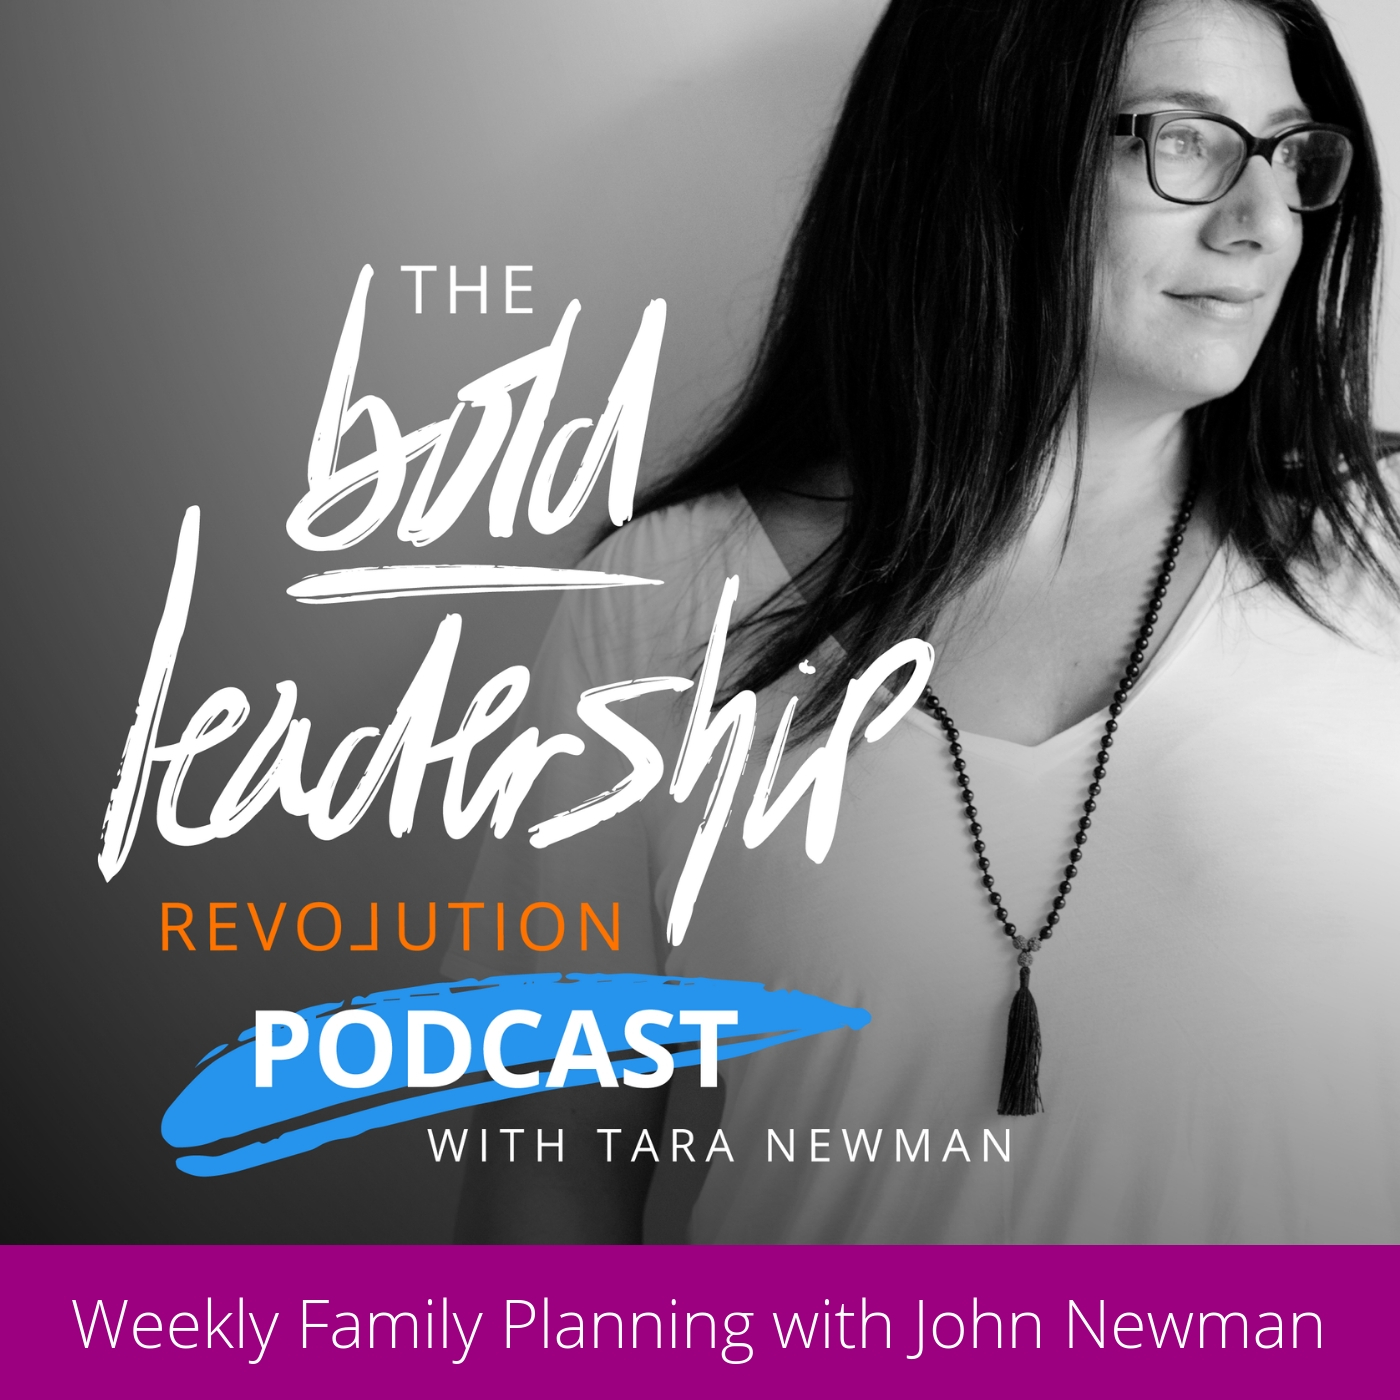 Weekly Family Planning with John Newman